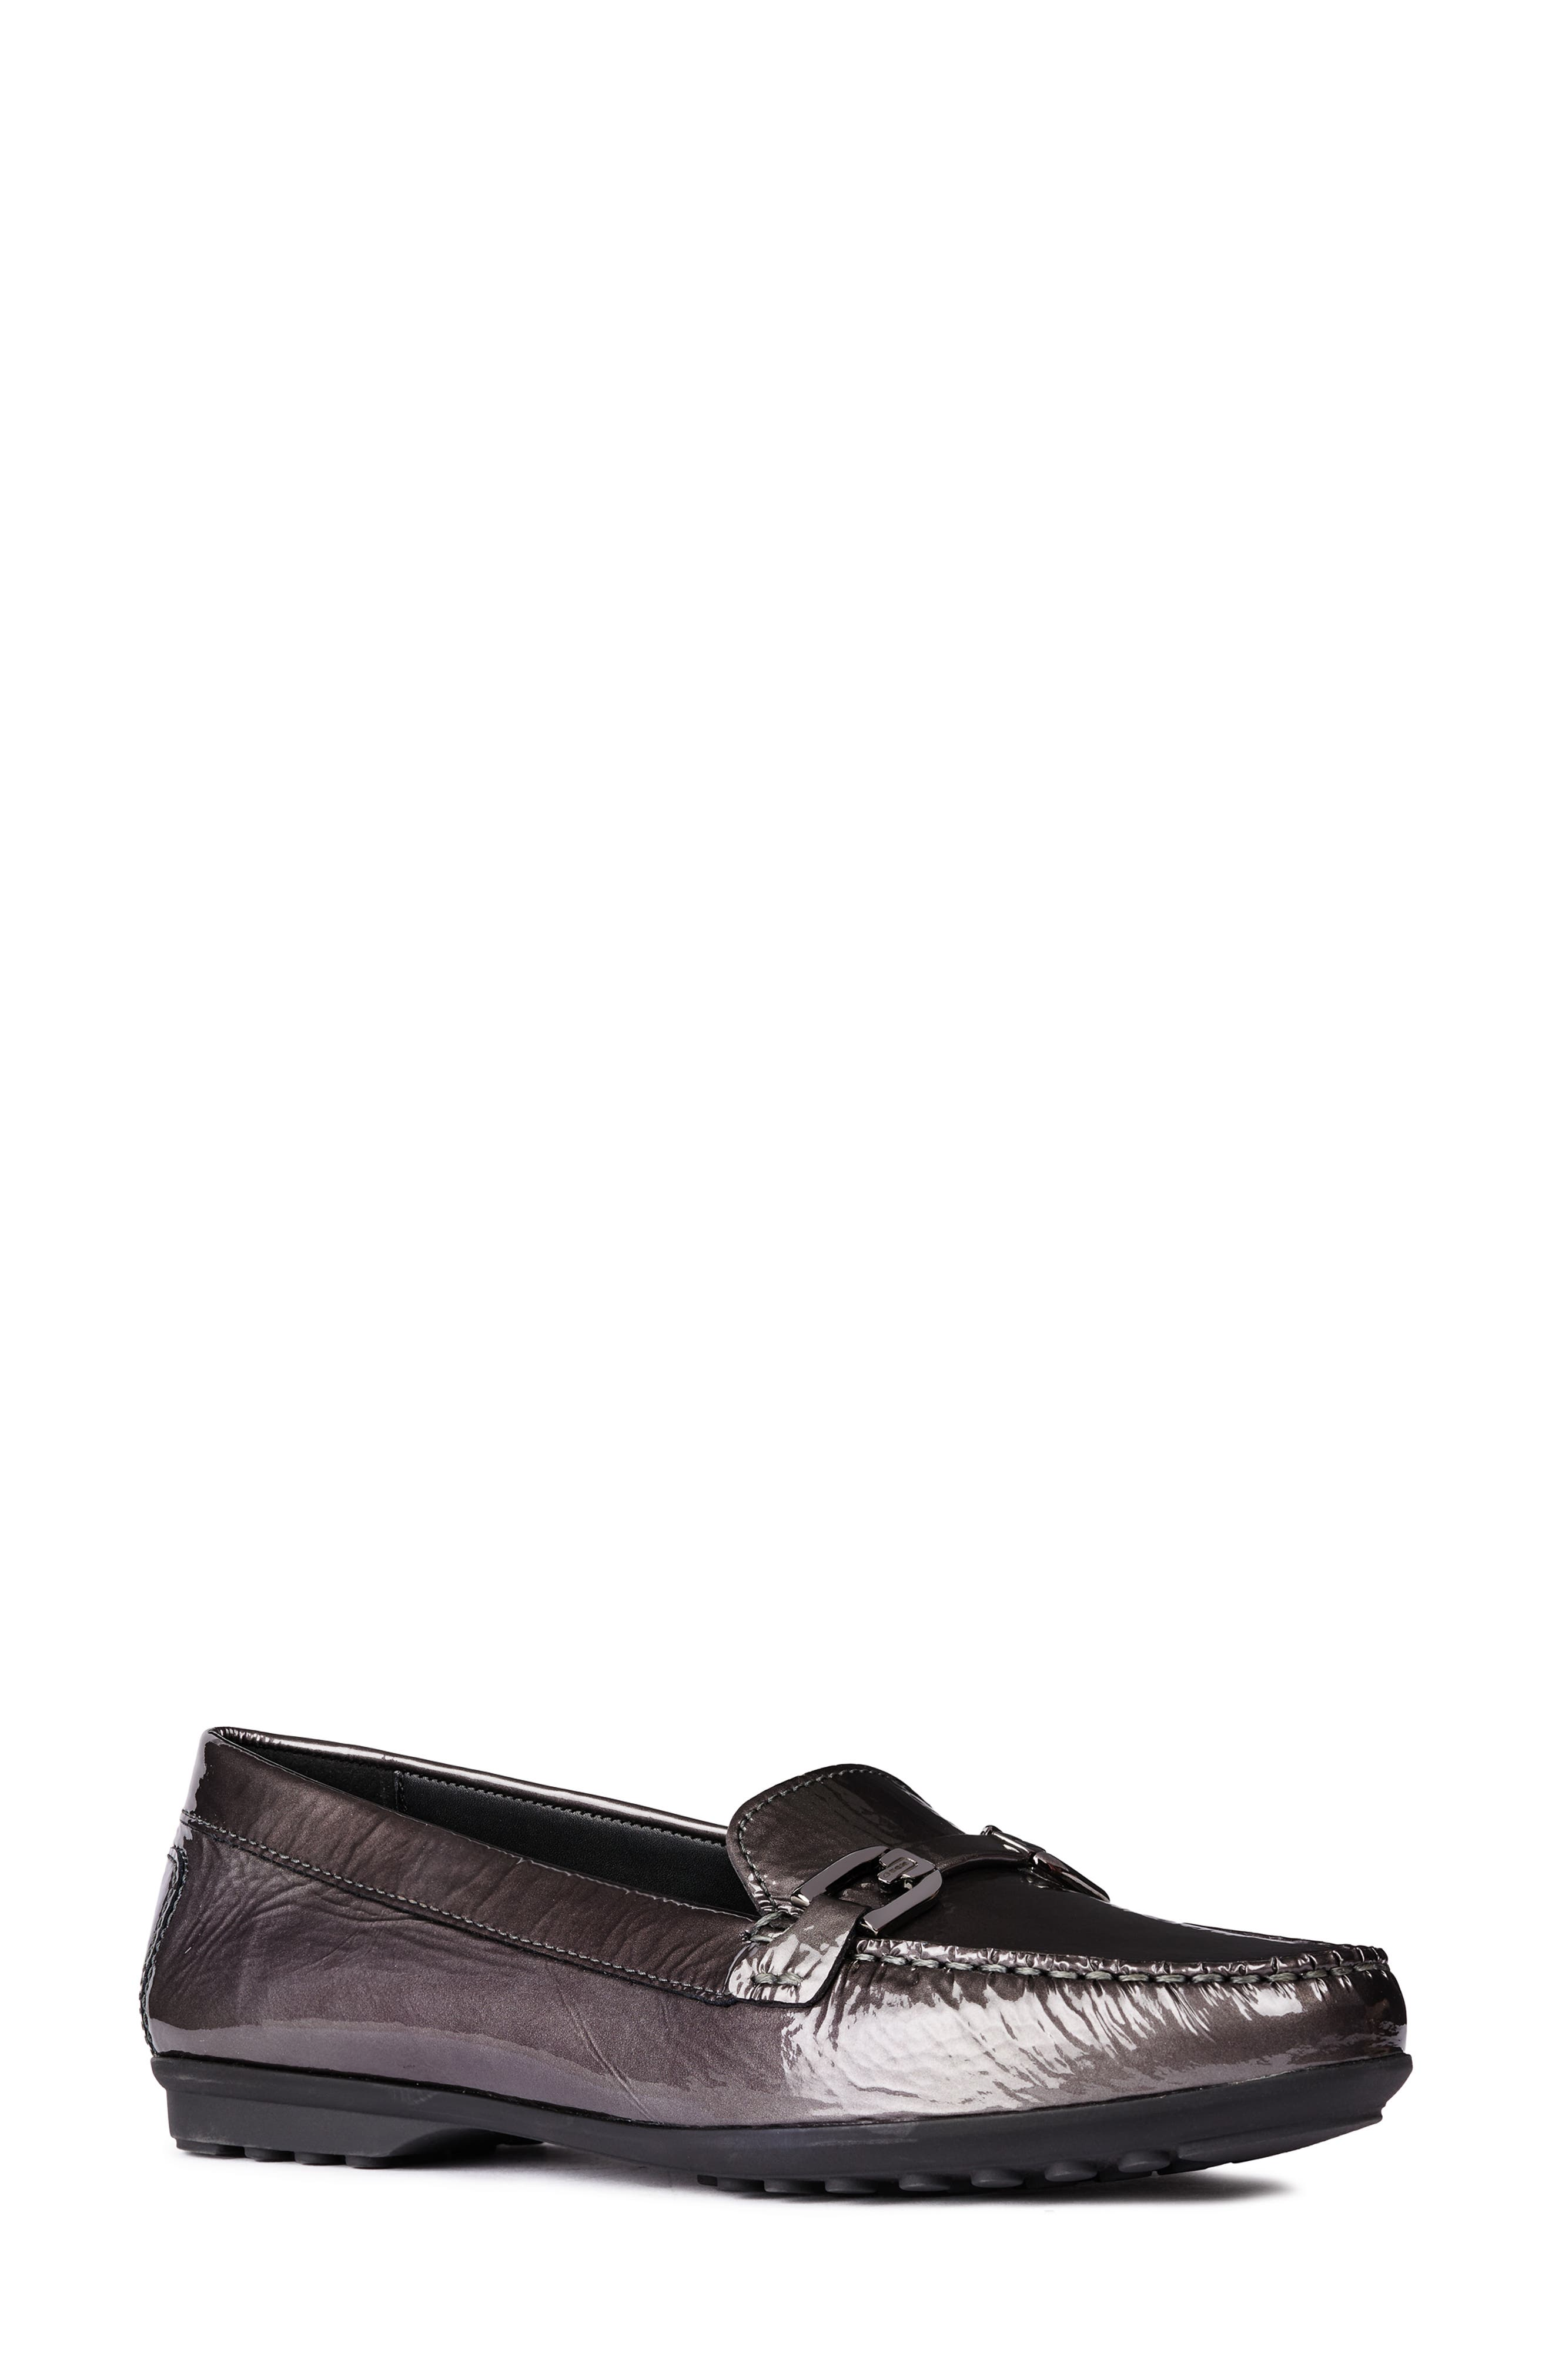 Geox Elidia Loafer, Grey